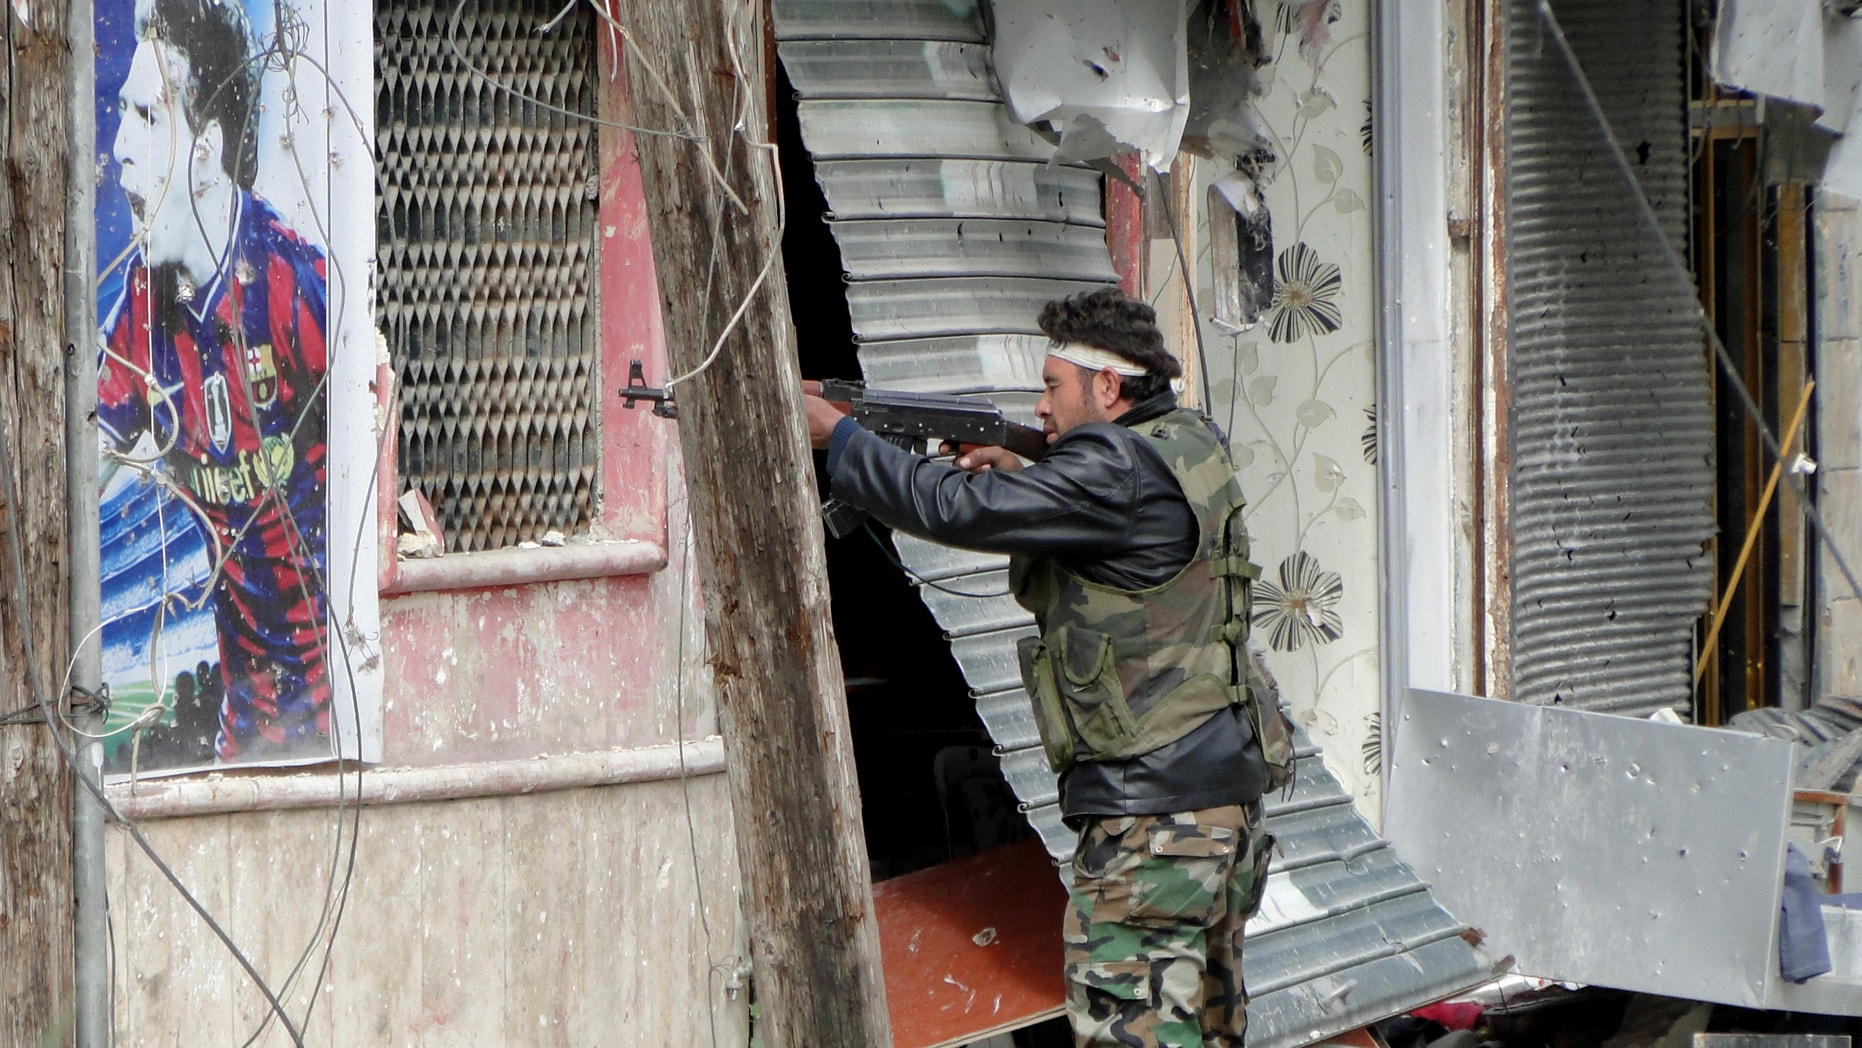 March 28, 2013 - Free Syrian Army fighters take position in Aleppo's Salaheddine district.